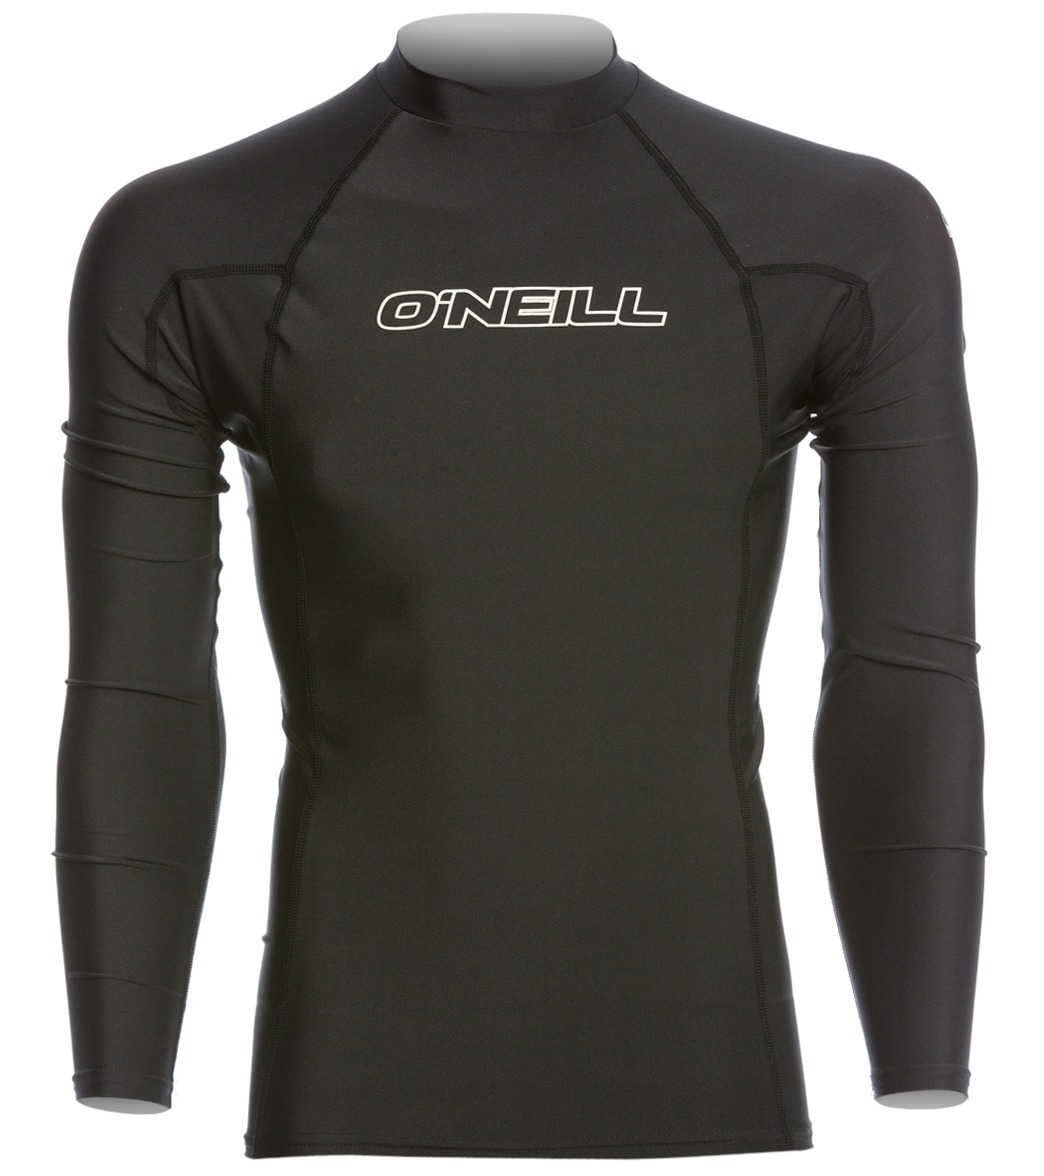 20aae11b982f2 O Neill Men s Basic Skins Long Sleeve Crew Rashguard at SwimOutlet.com